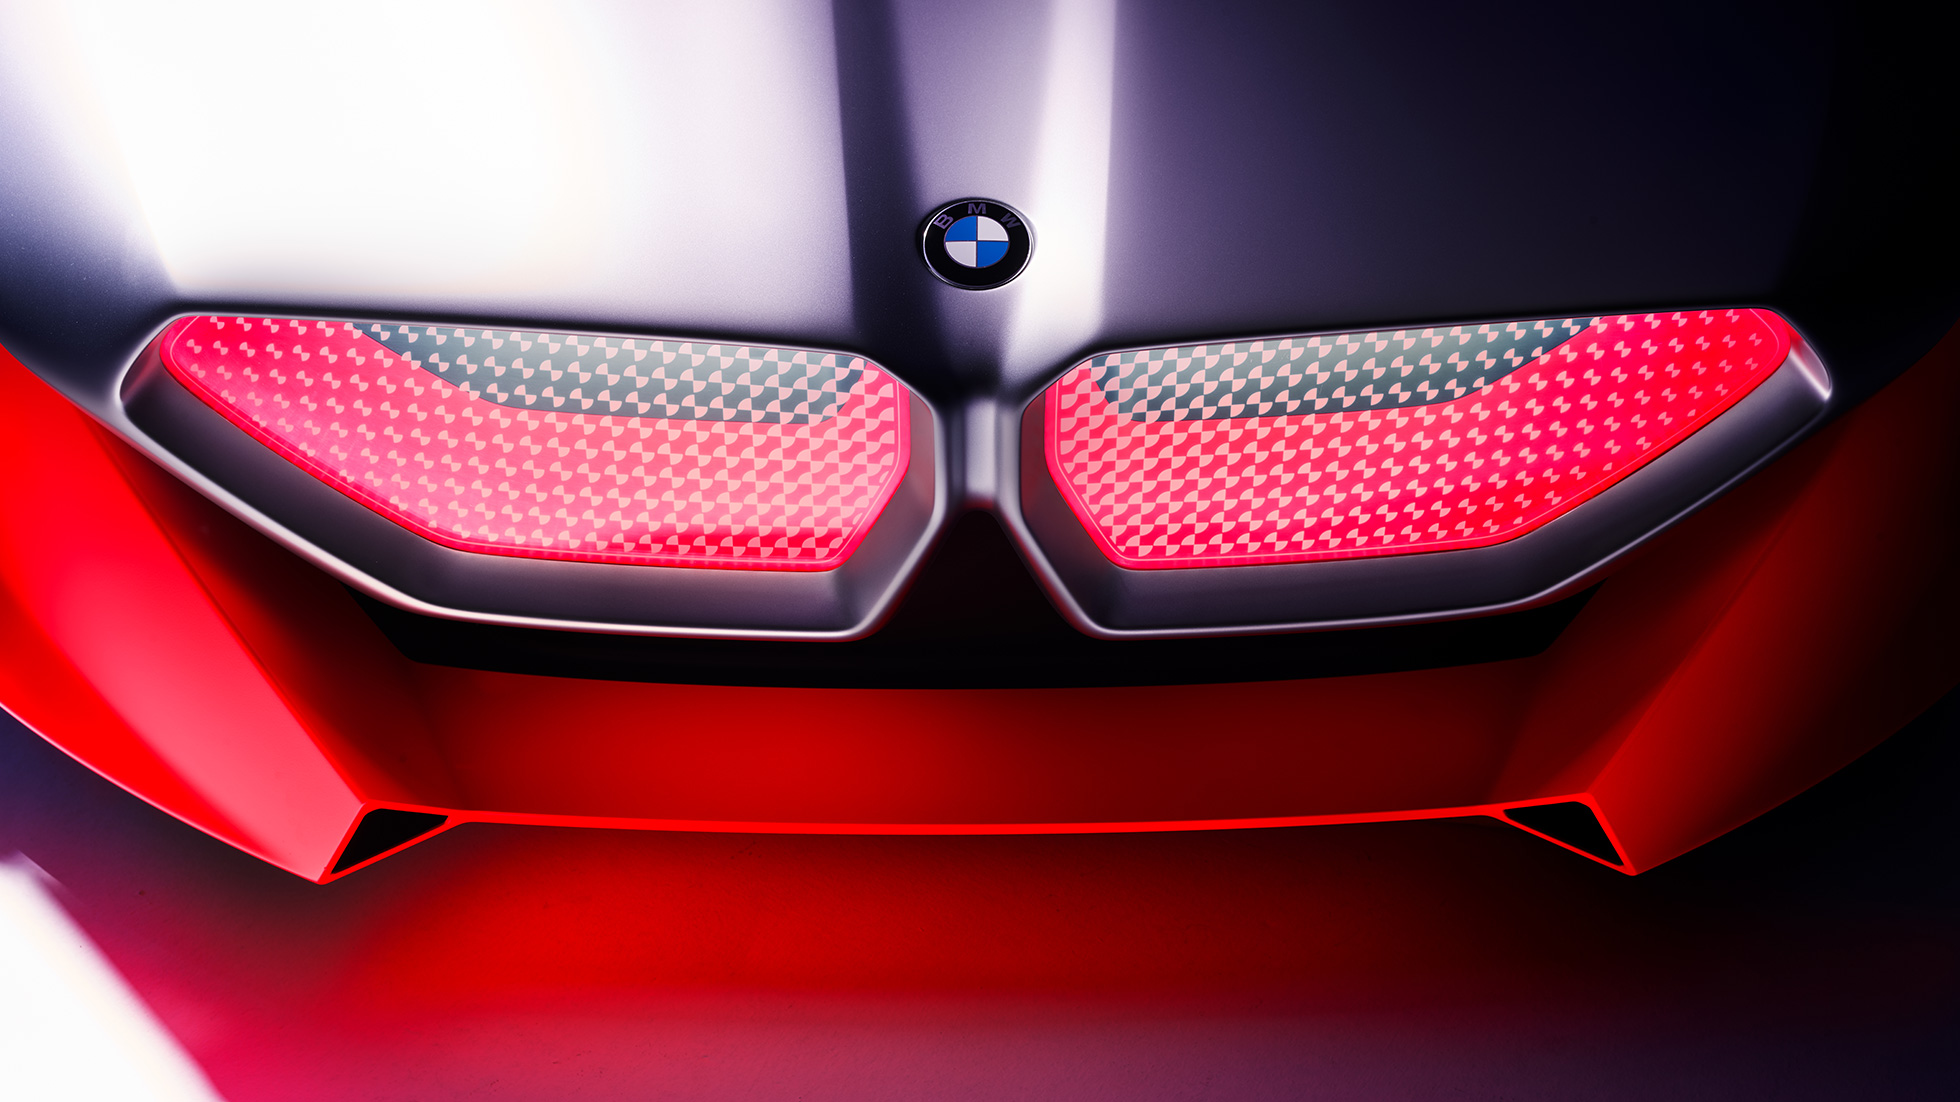 BMW Vision M NEXT, close-up, Exterior, BMW kidney grille